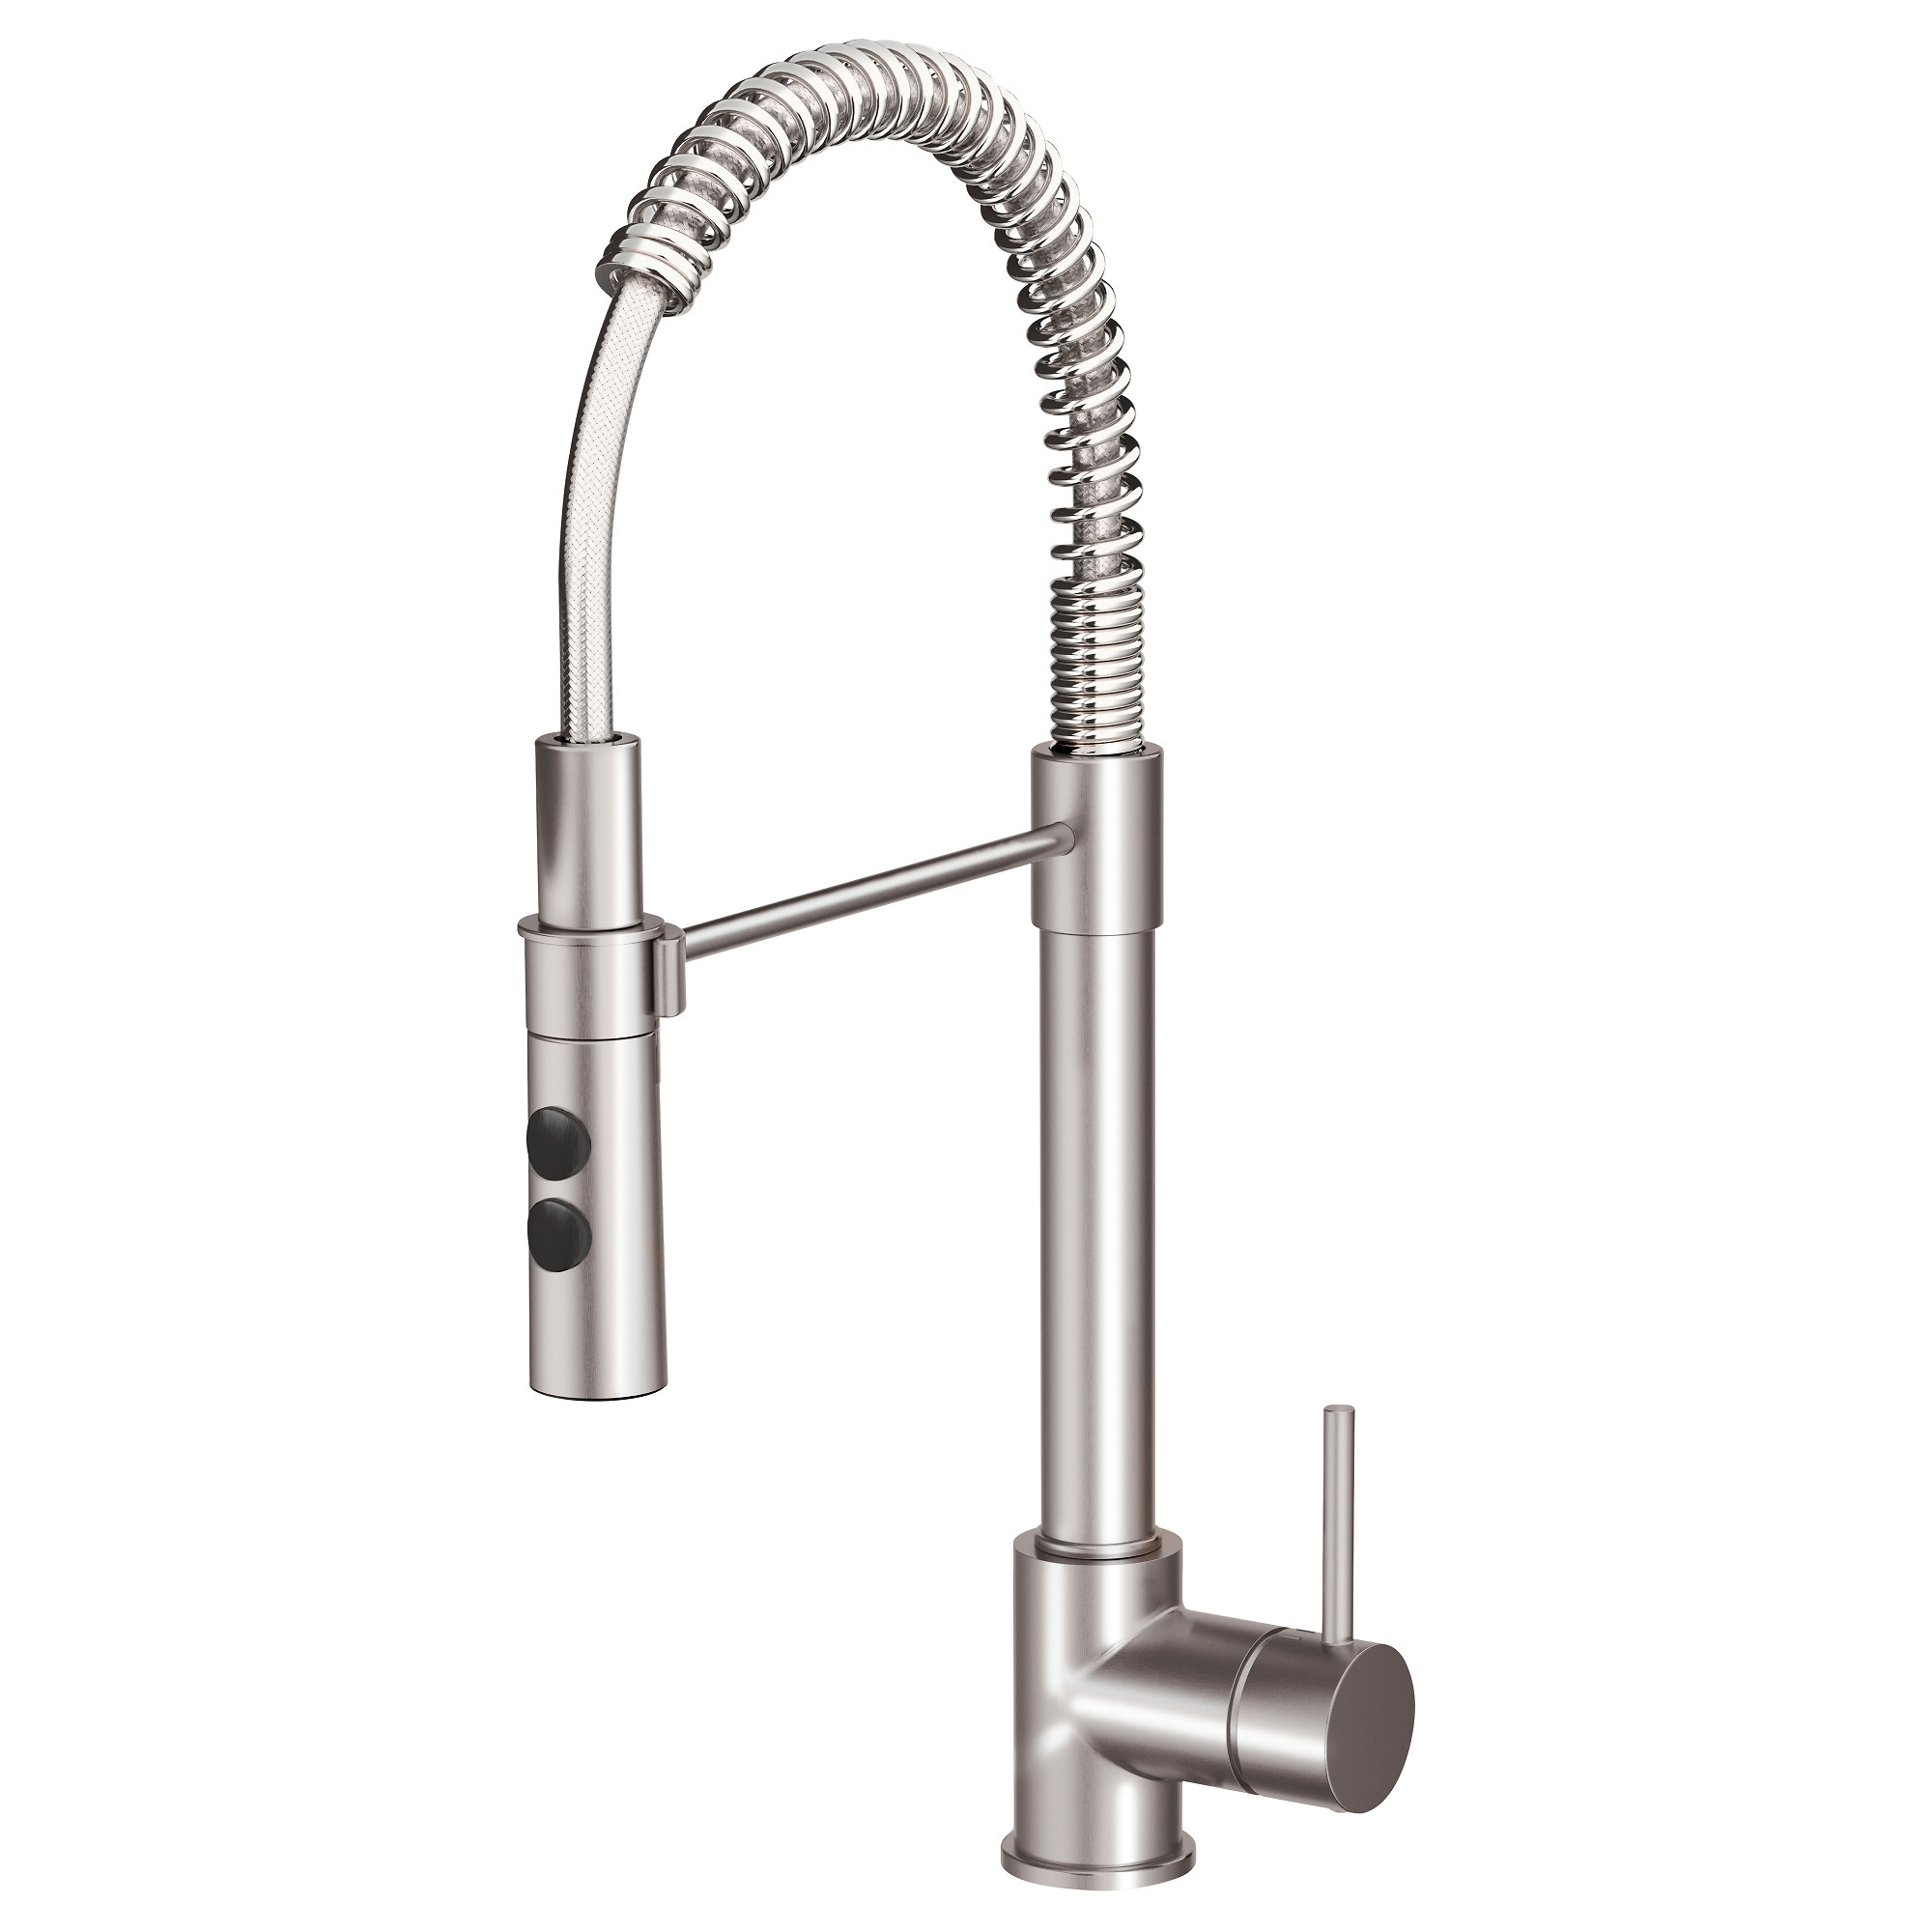 VIMMERN Kitchen faucet with handspray - IKEA